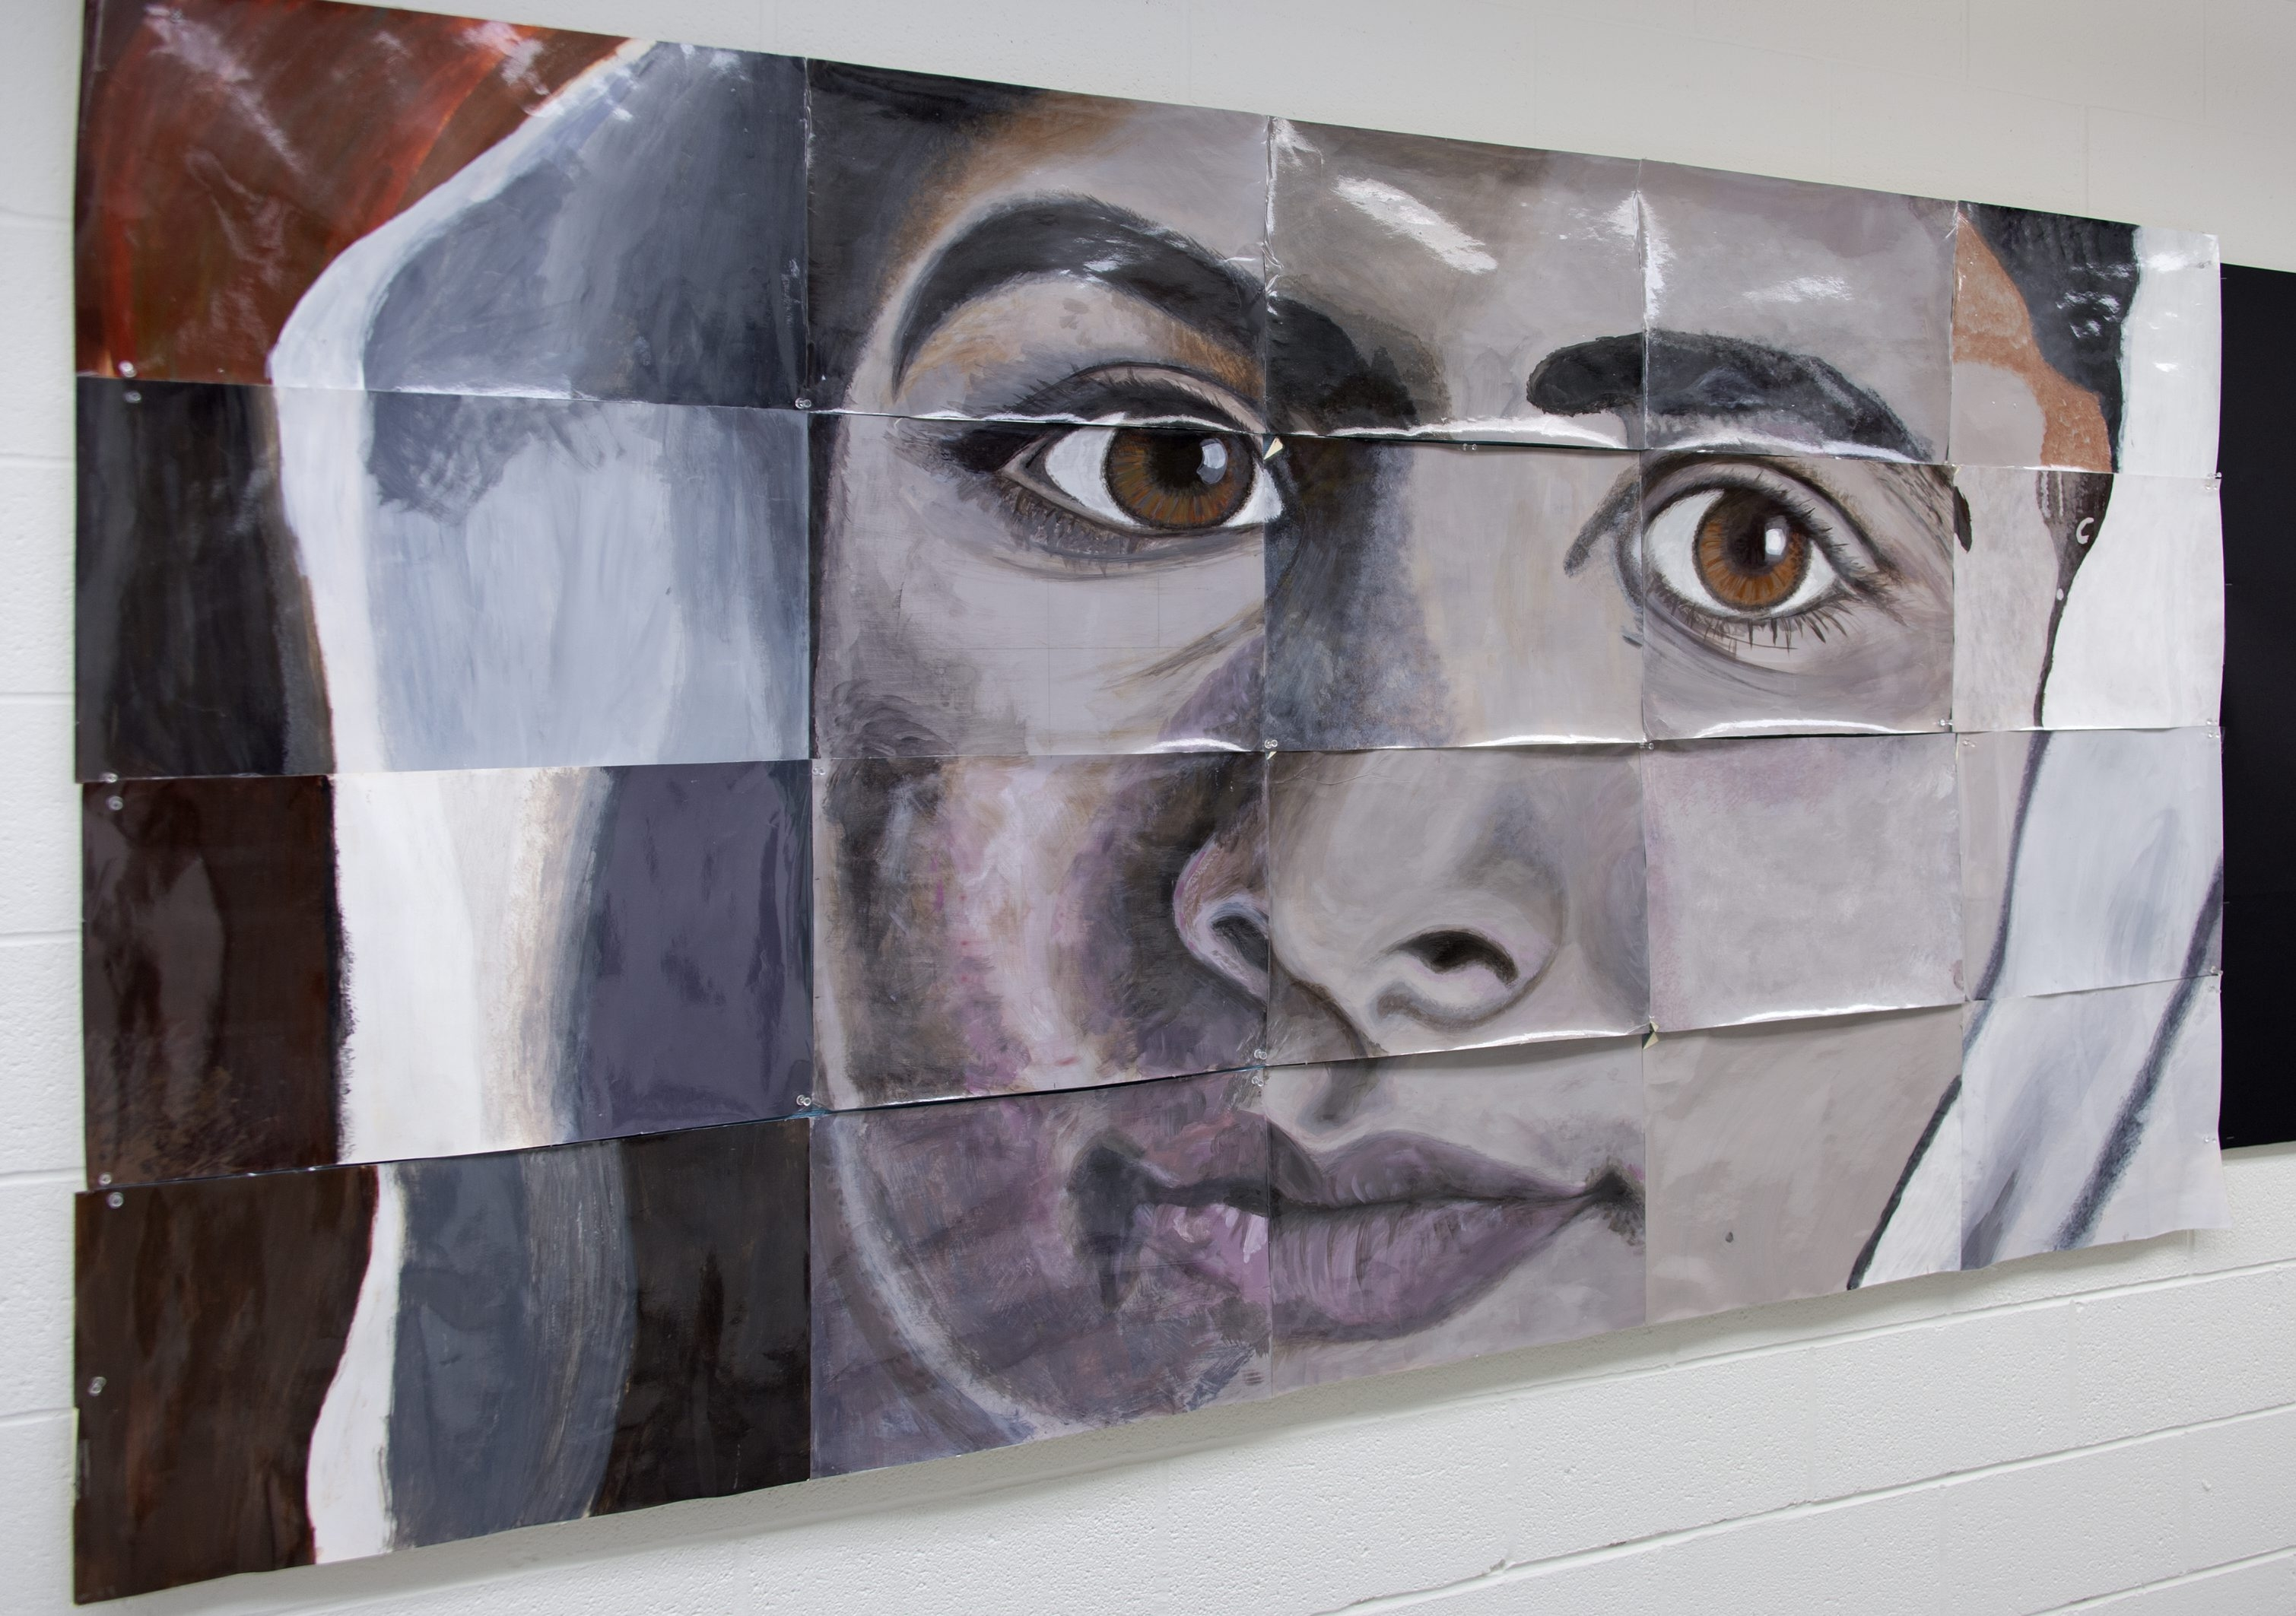 """A collaborative painting by Matt SaGurney and students from Kenmore East High School is on view in the exhibition """"Healing Hearts: From Hurt to Hope"""" in the Albright-Knox Art Gallery."""